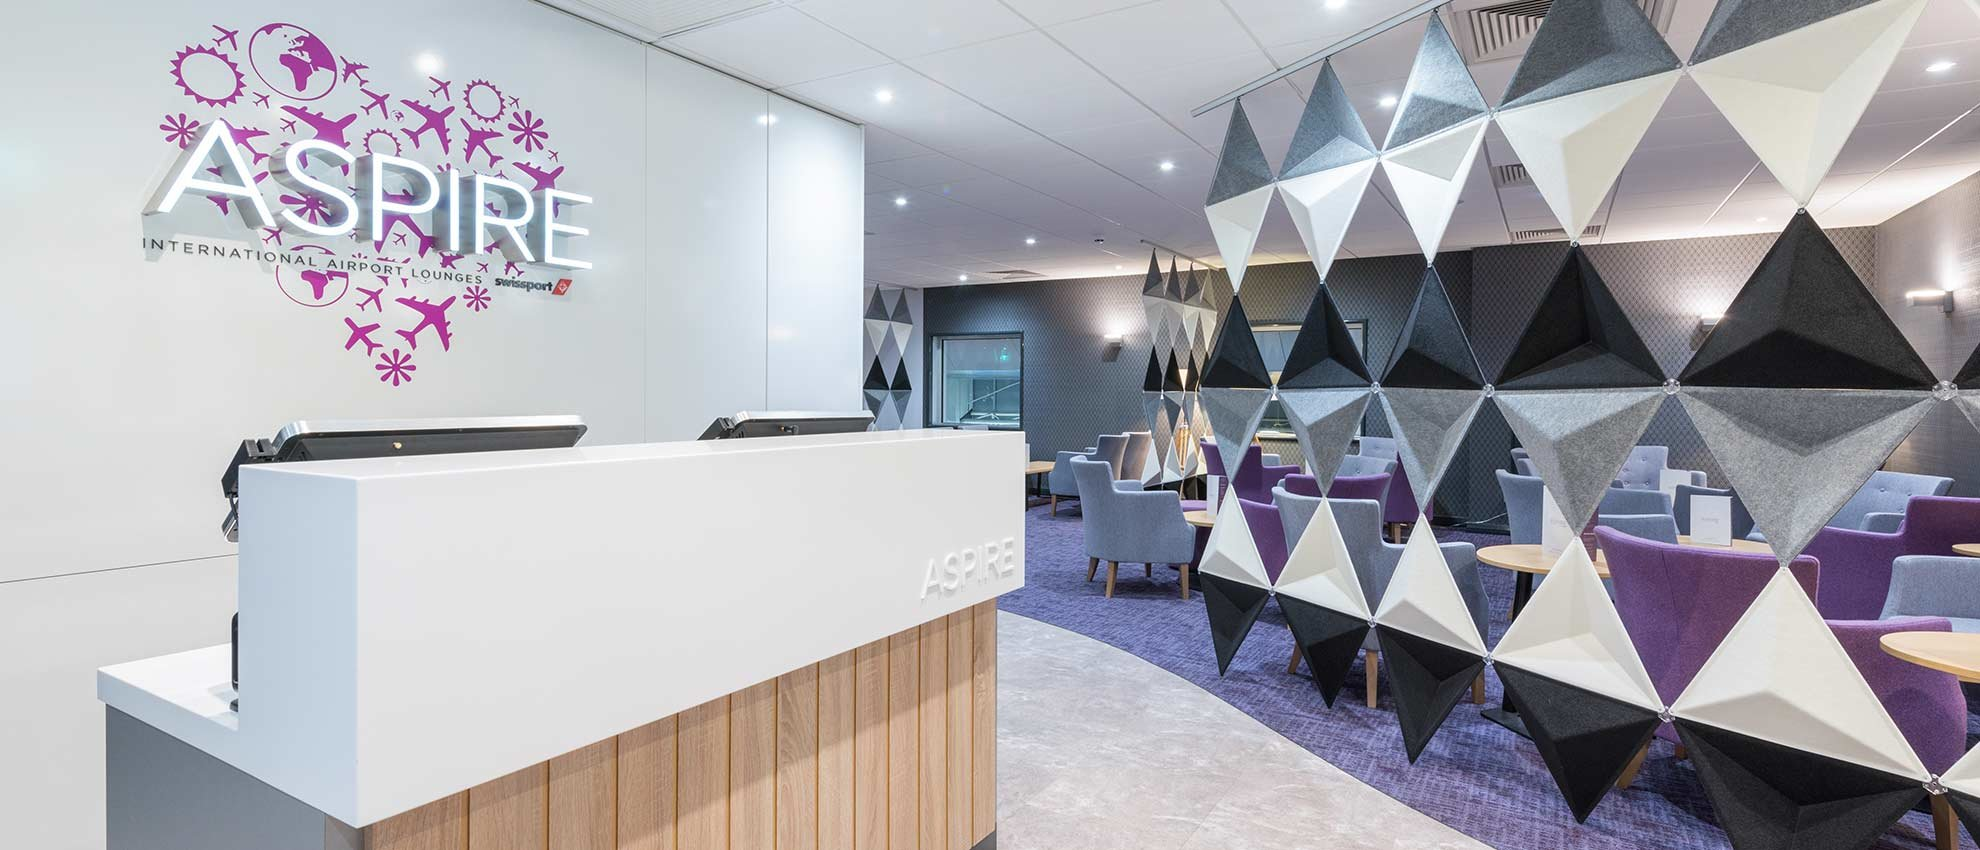 Aspire Lounge at Manchester Airport Terminal 2 | Executive Lounges